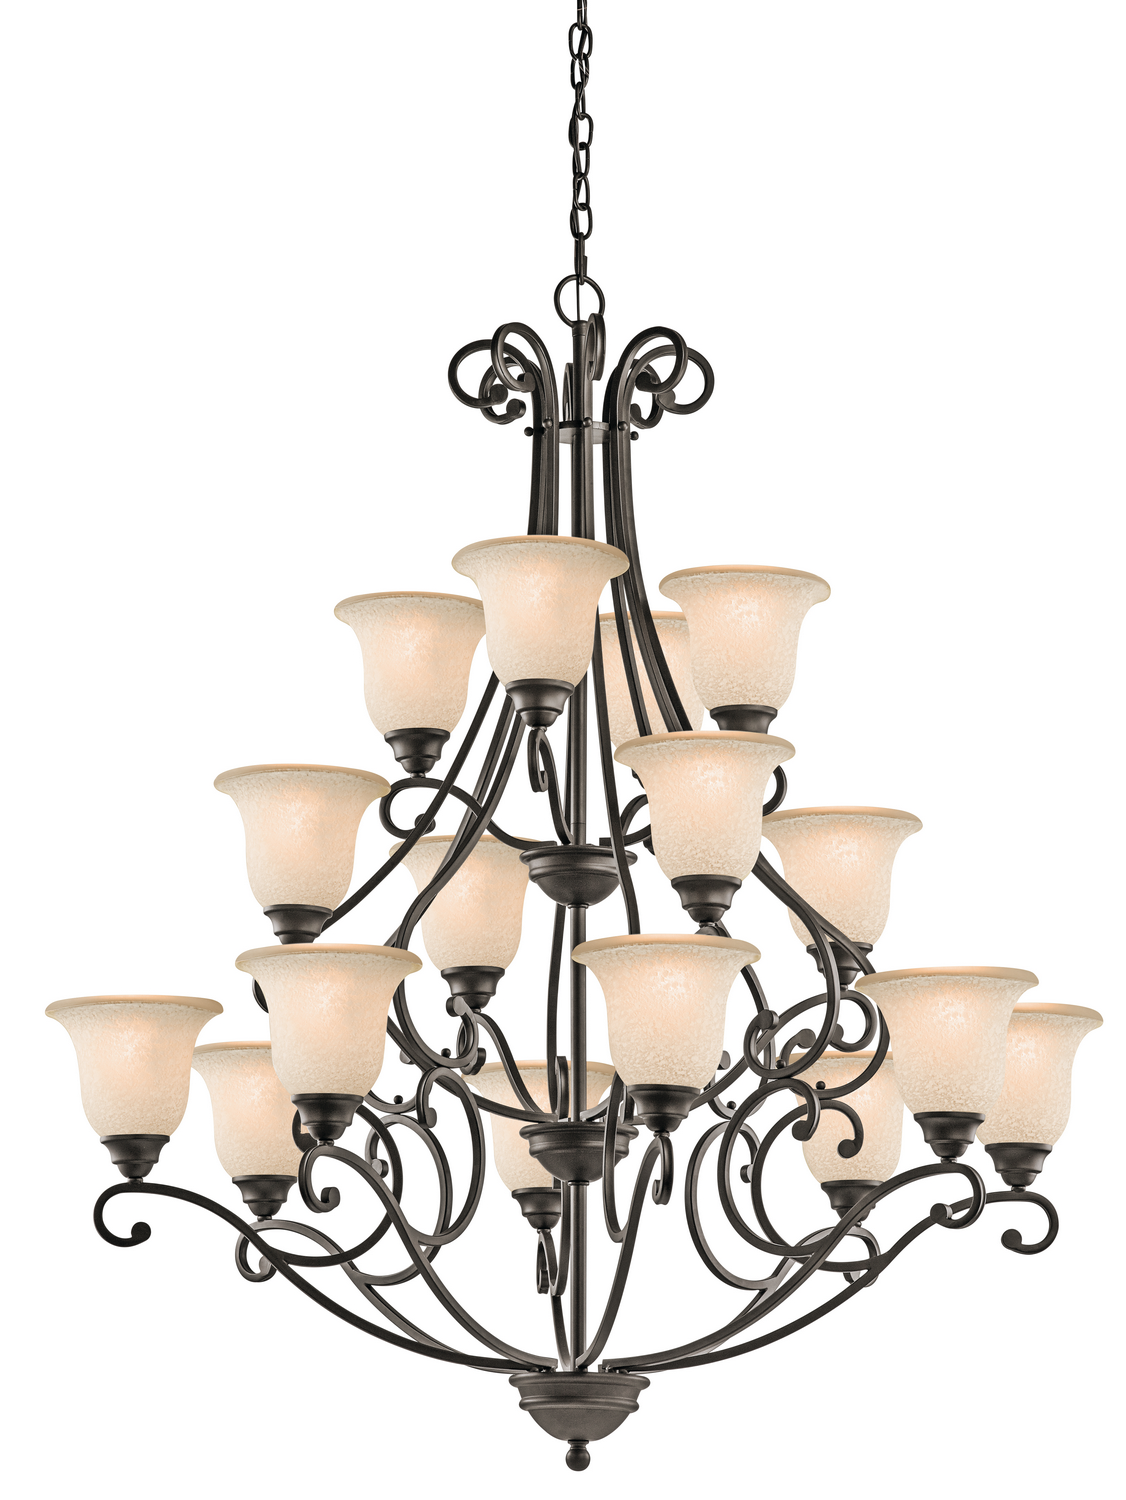 16 Light Chandelier from the Camerena collection by Kichler 43234OZ